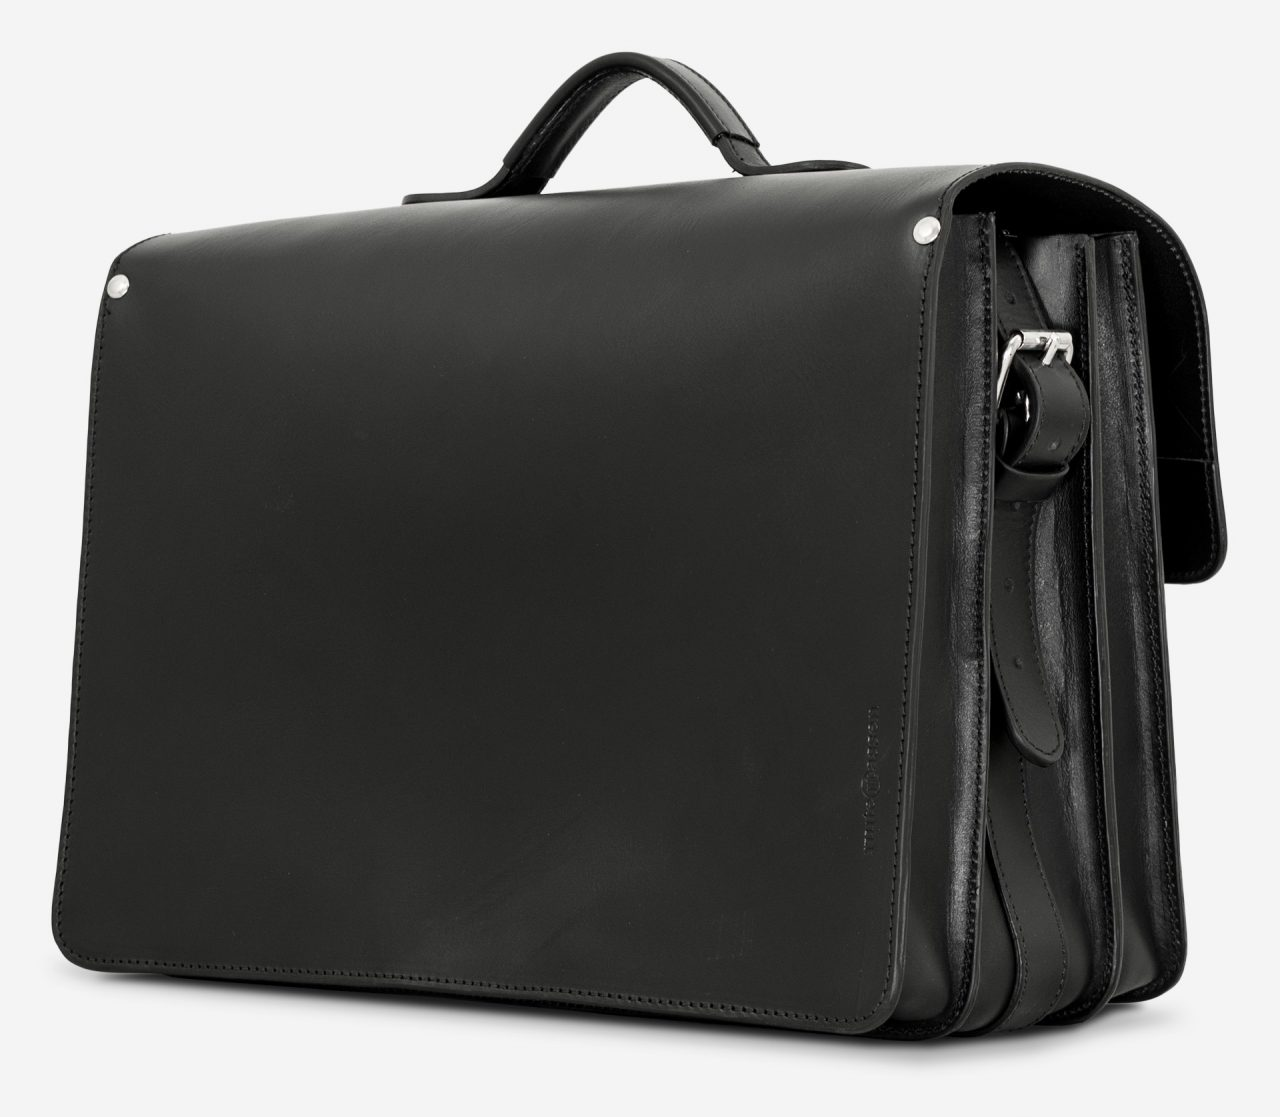 Back view of black leather laptop satchel bag with 3 gussets and symmetric front pockets 112358.